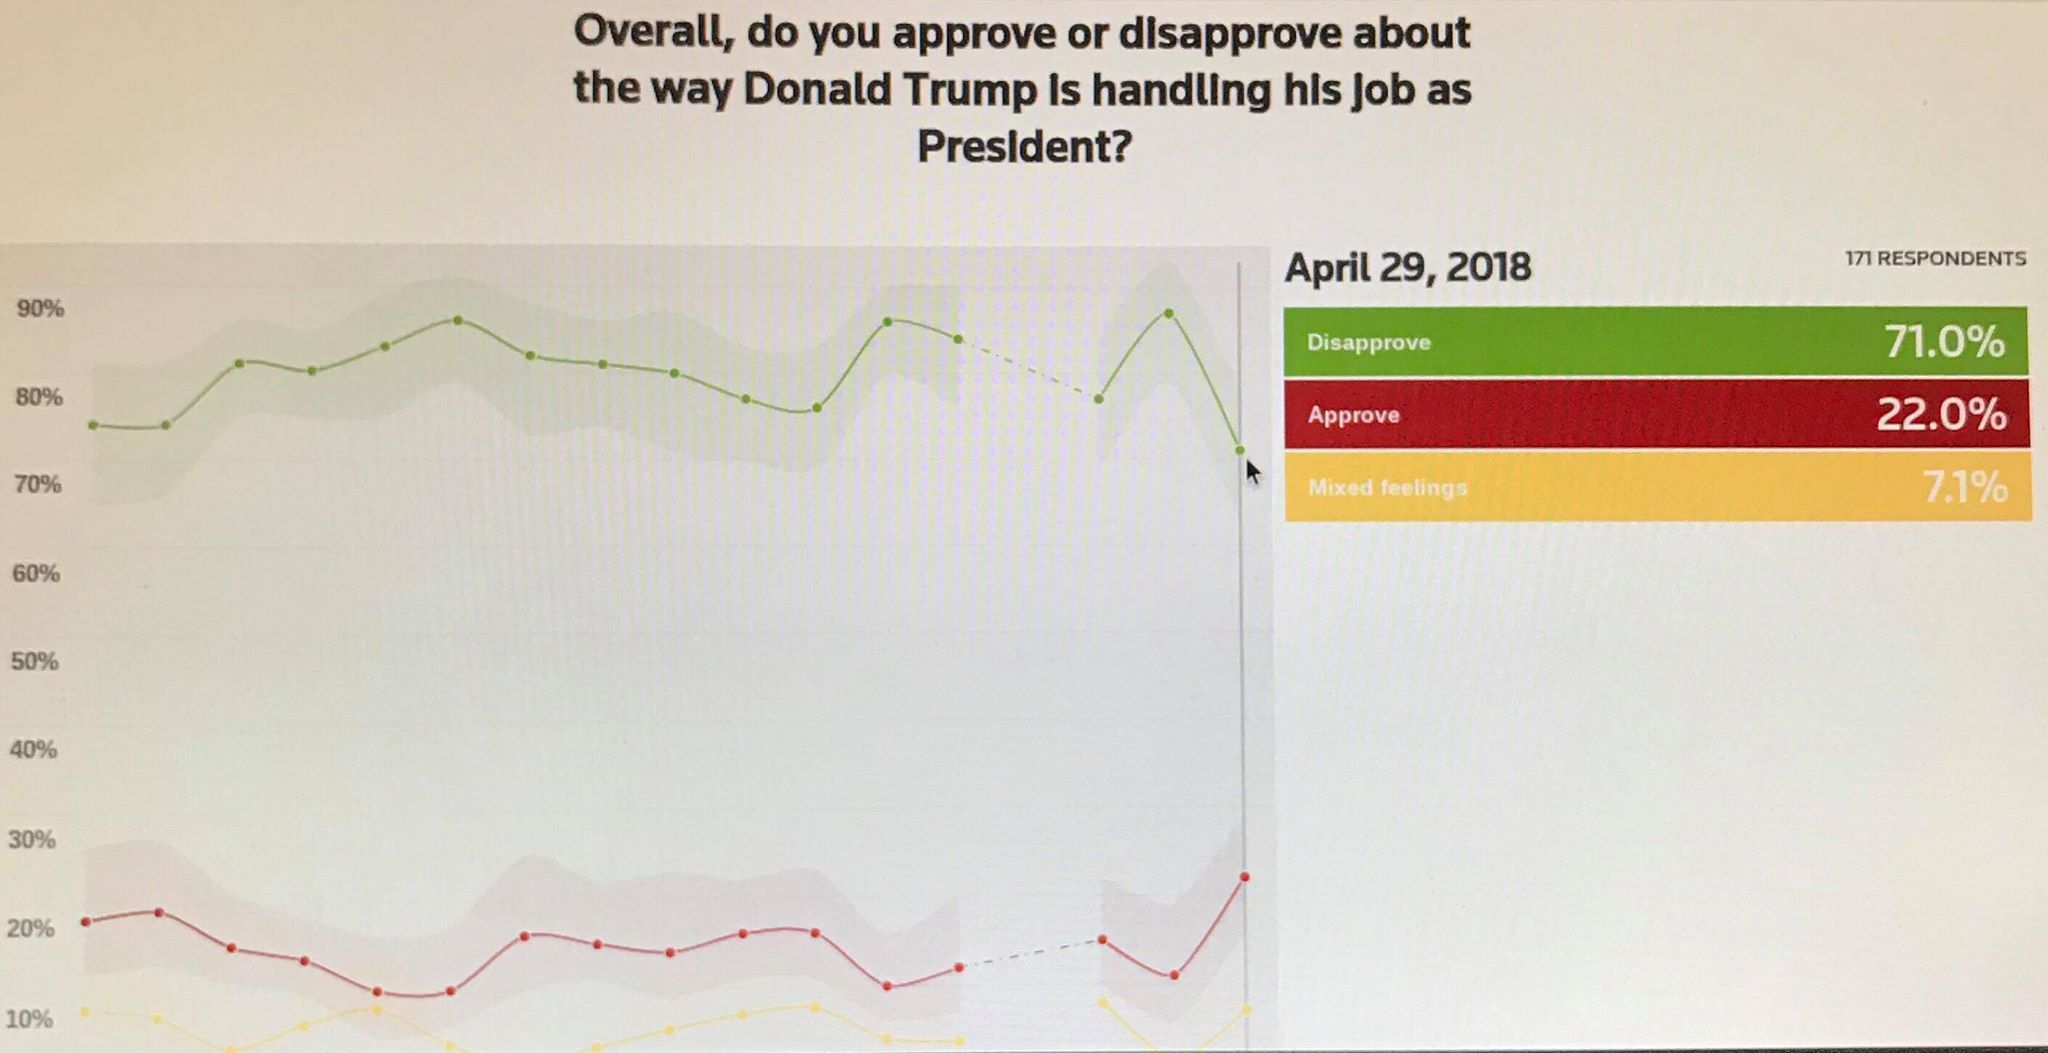 Reuters poll week ending April 29 2018 reflects black men approval rating of the President at 22%. Photo credit to US4Trump Reuters screen capture